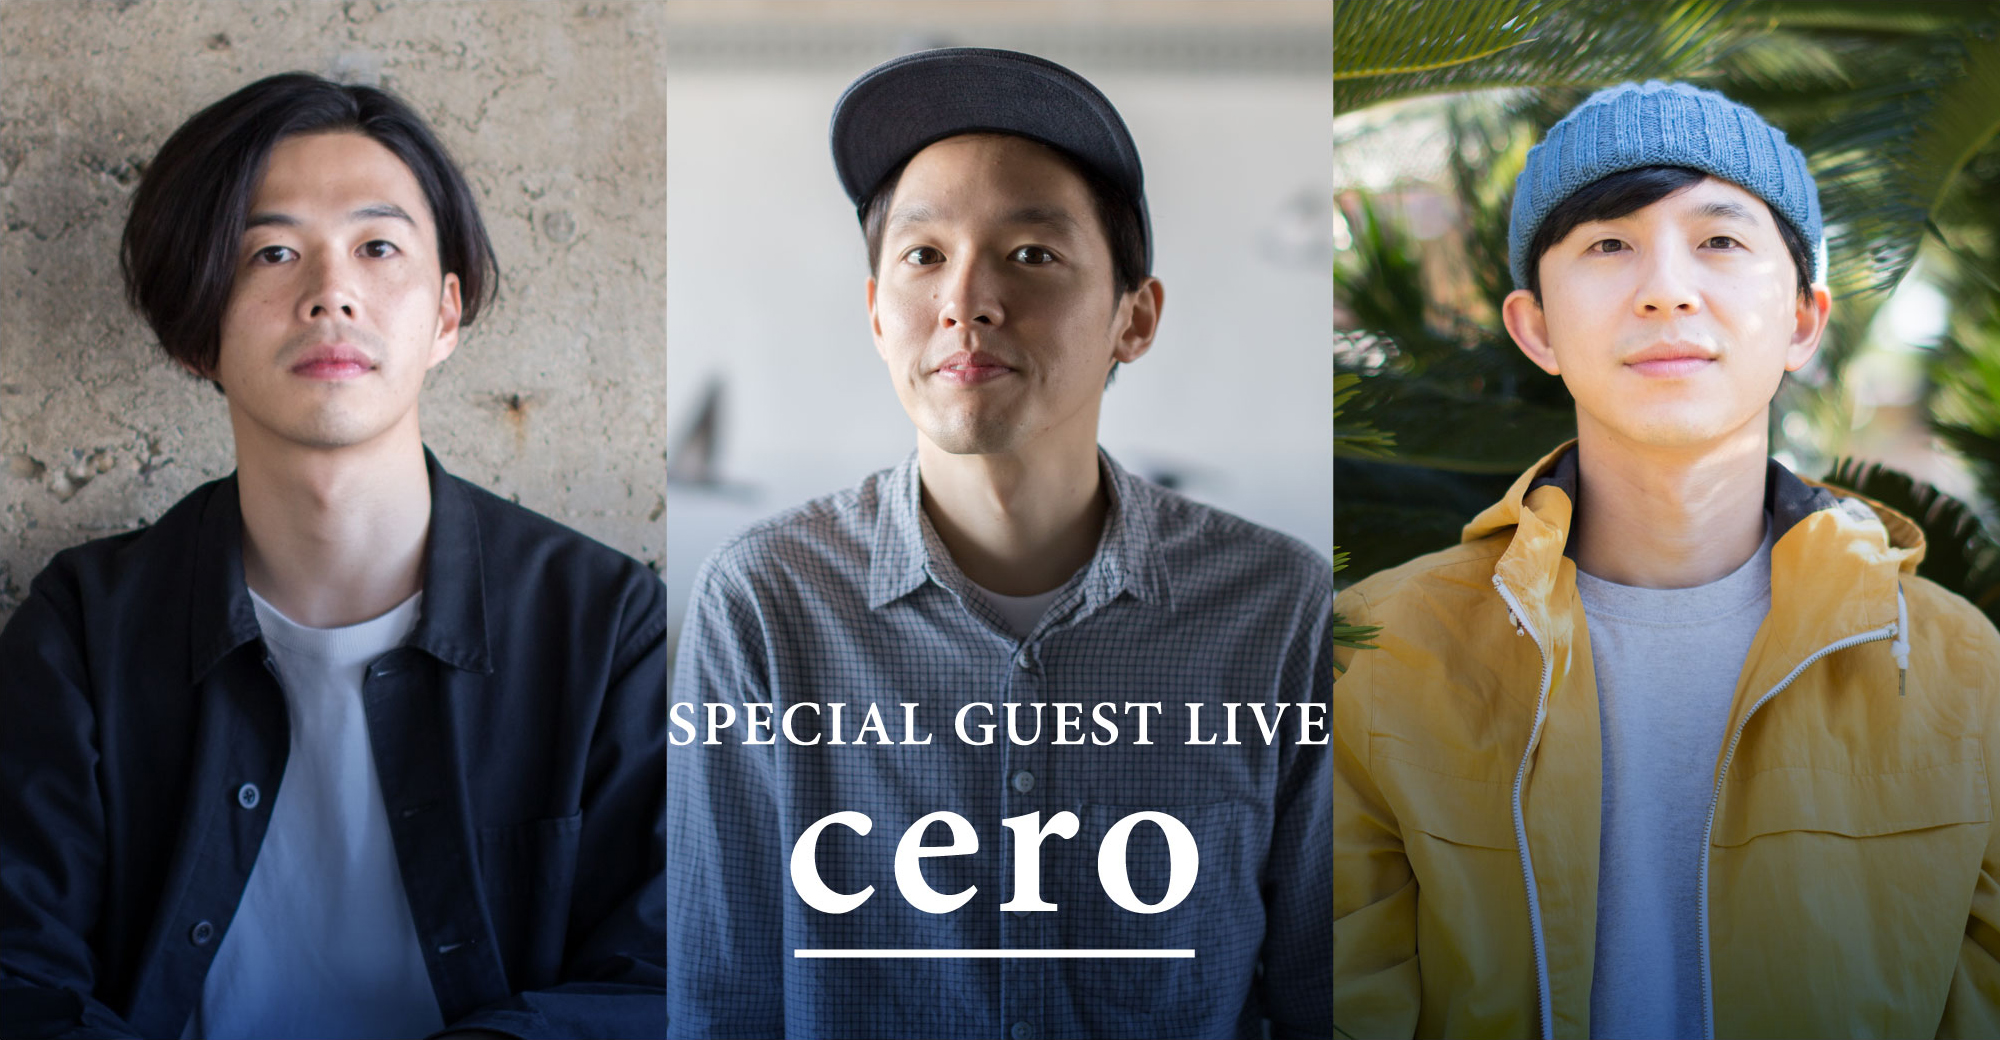 special gest live cero